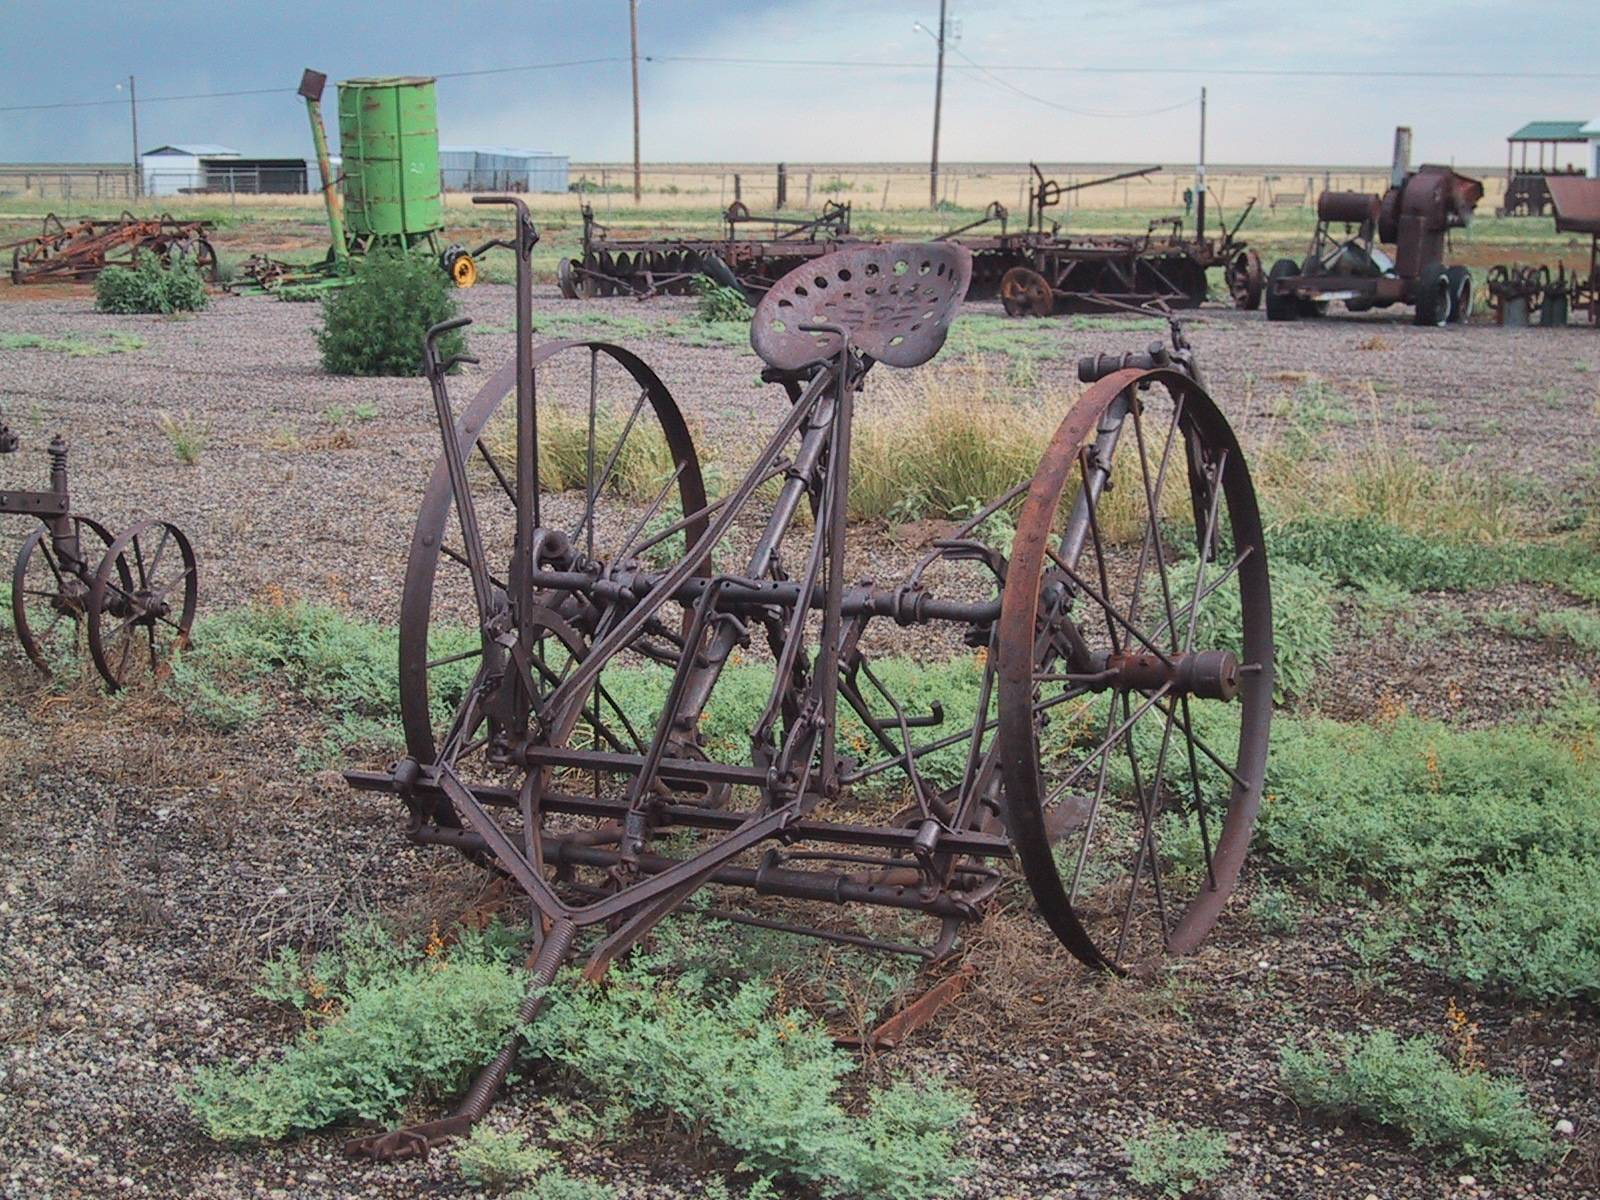 Antique Farm Equipment Diesel Bombers